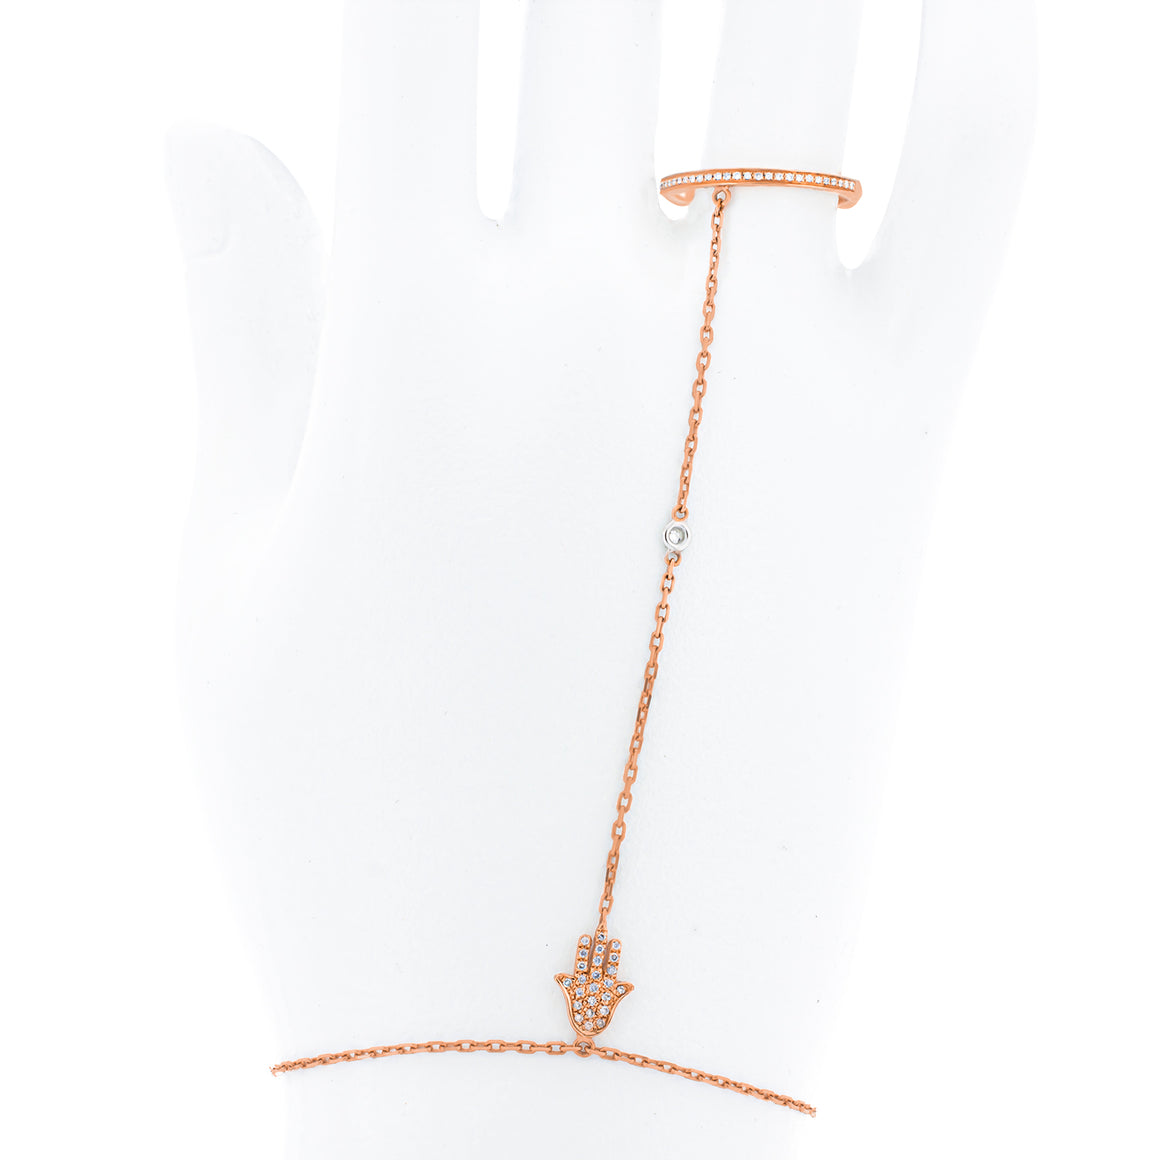 Diamond Ring attached to bracelet | 57 round diamonds in 18K Rose gold very delicate and jewelry | Hamsa slave bracelet - hand chain